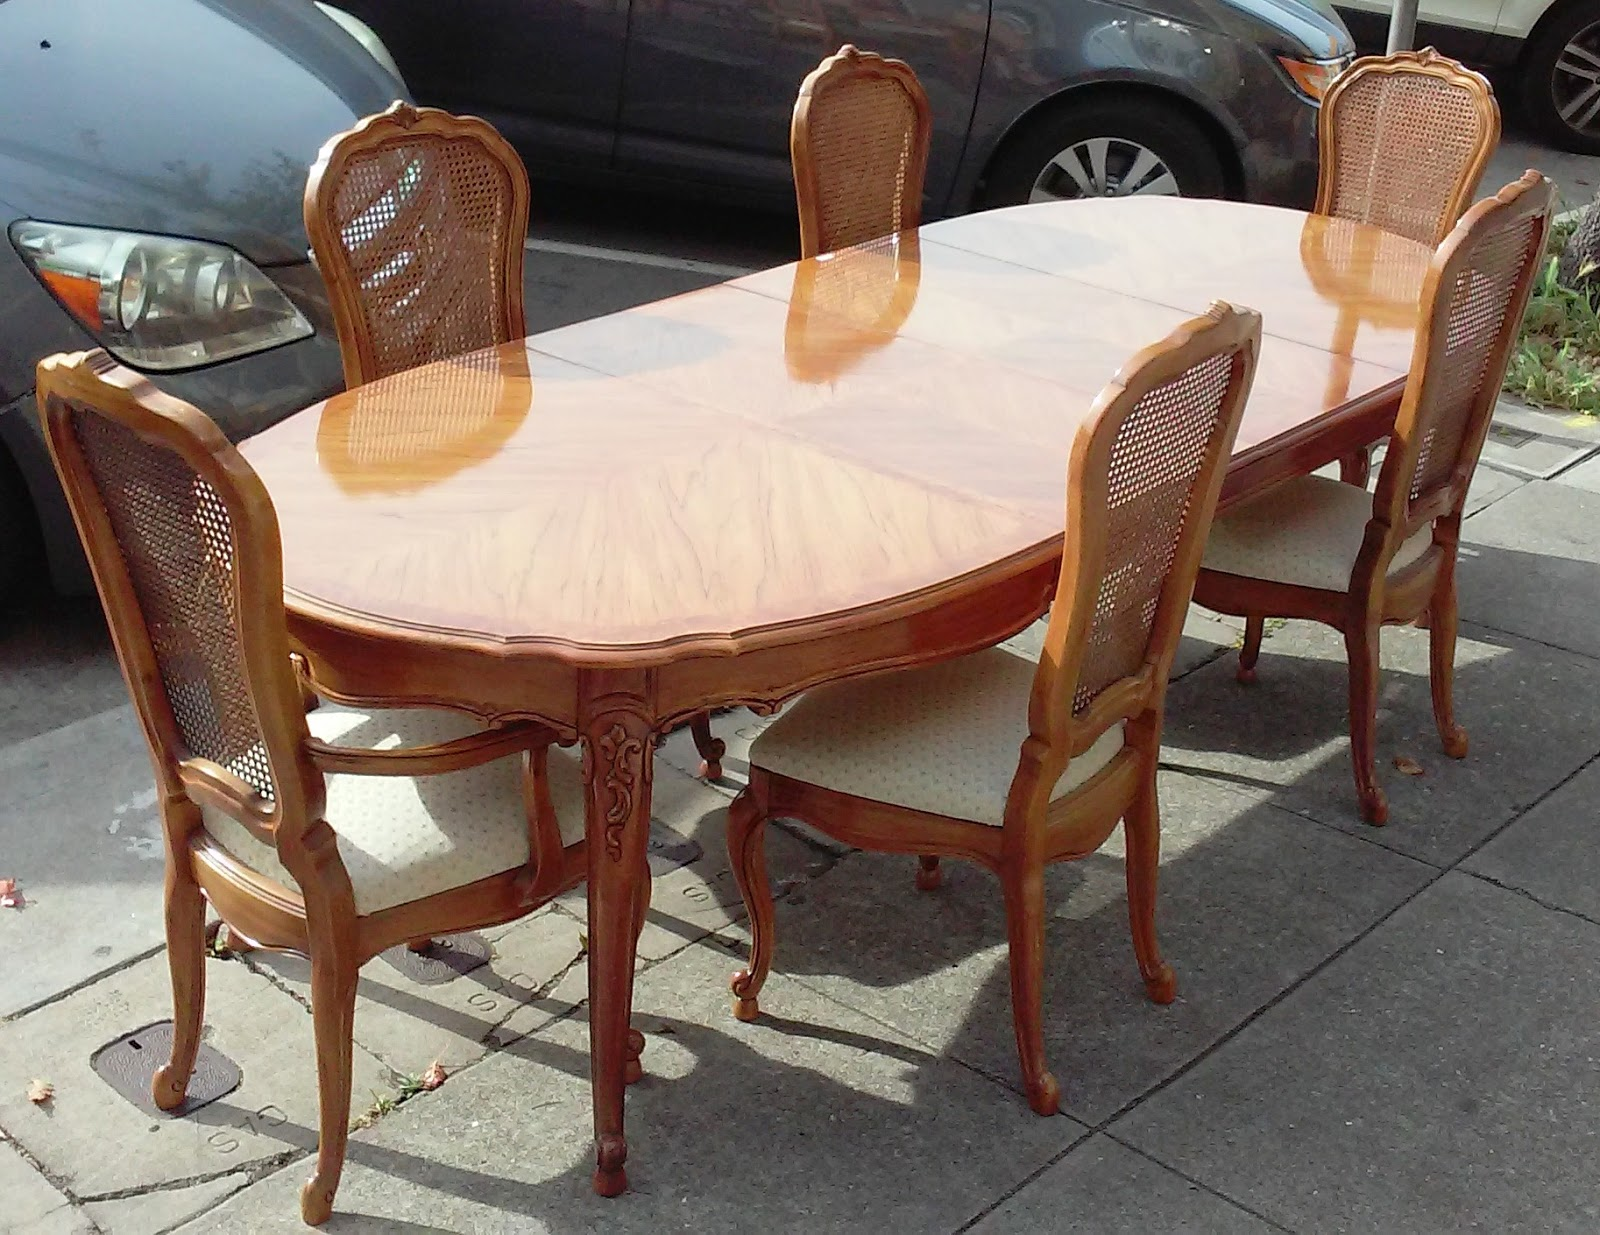 UHURU FURNITURE amp COLLECTIBLES SOLD REDUCED  : 050516dining2Btable from uhurufurniture.blogspot.com size 1600 x 1235 jpeg 386kB